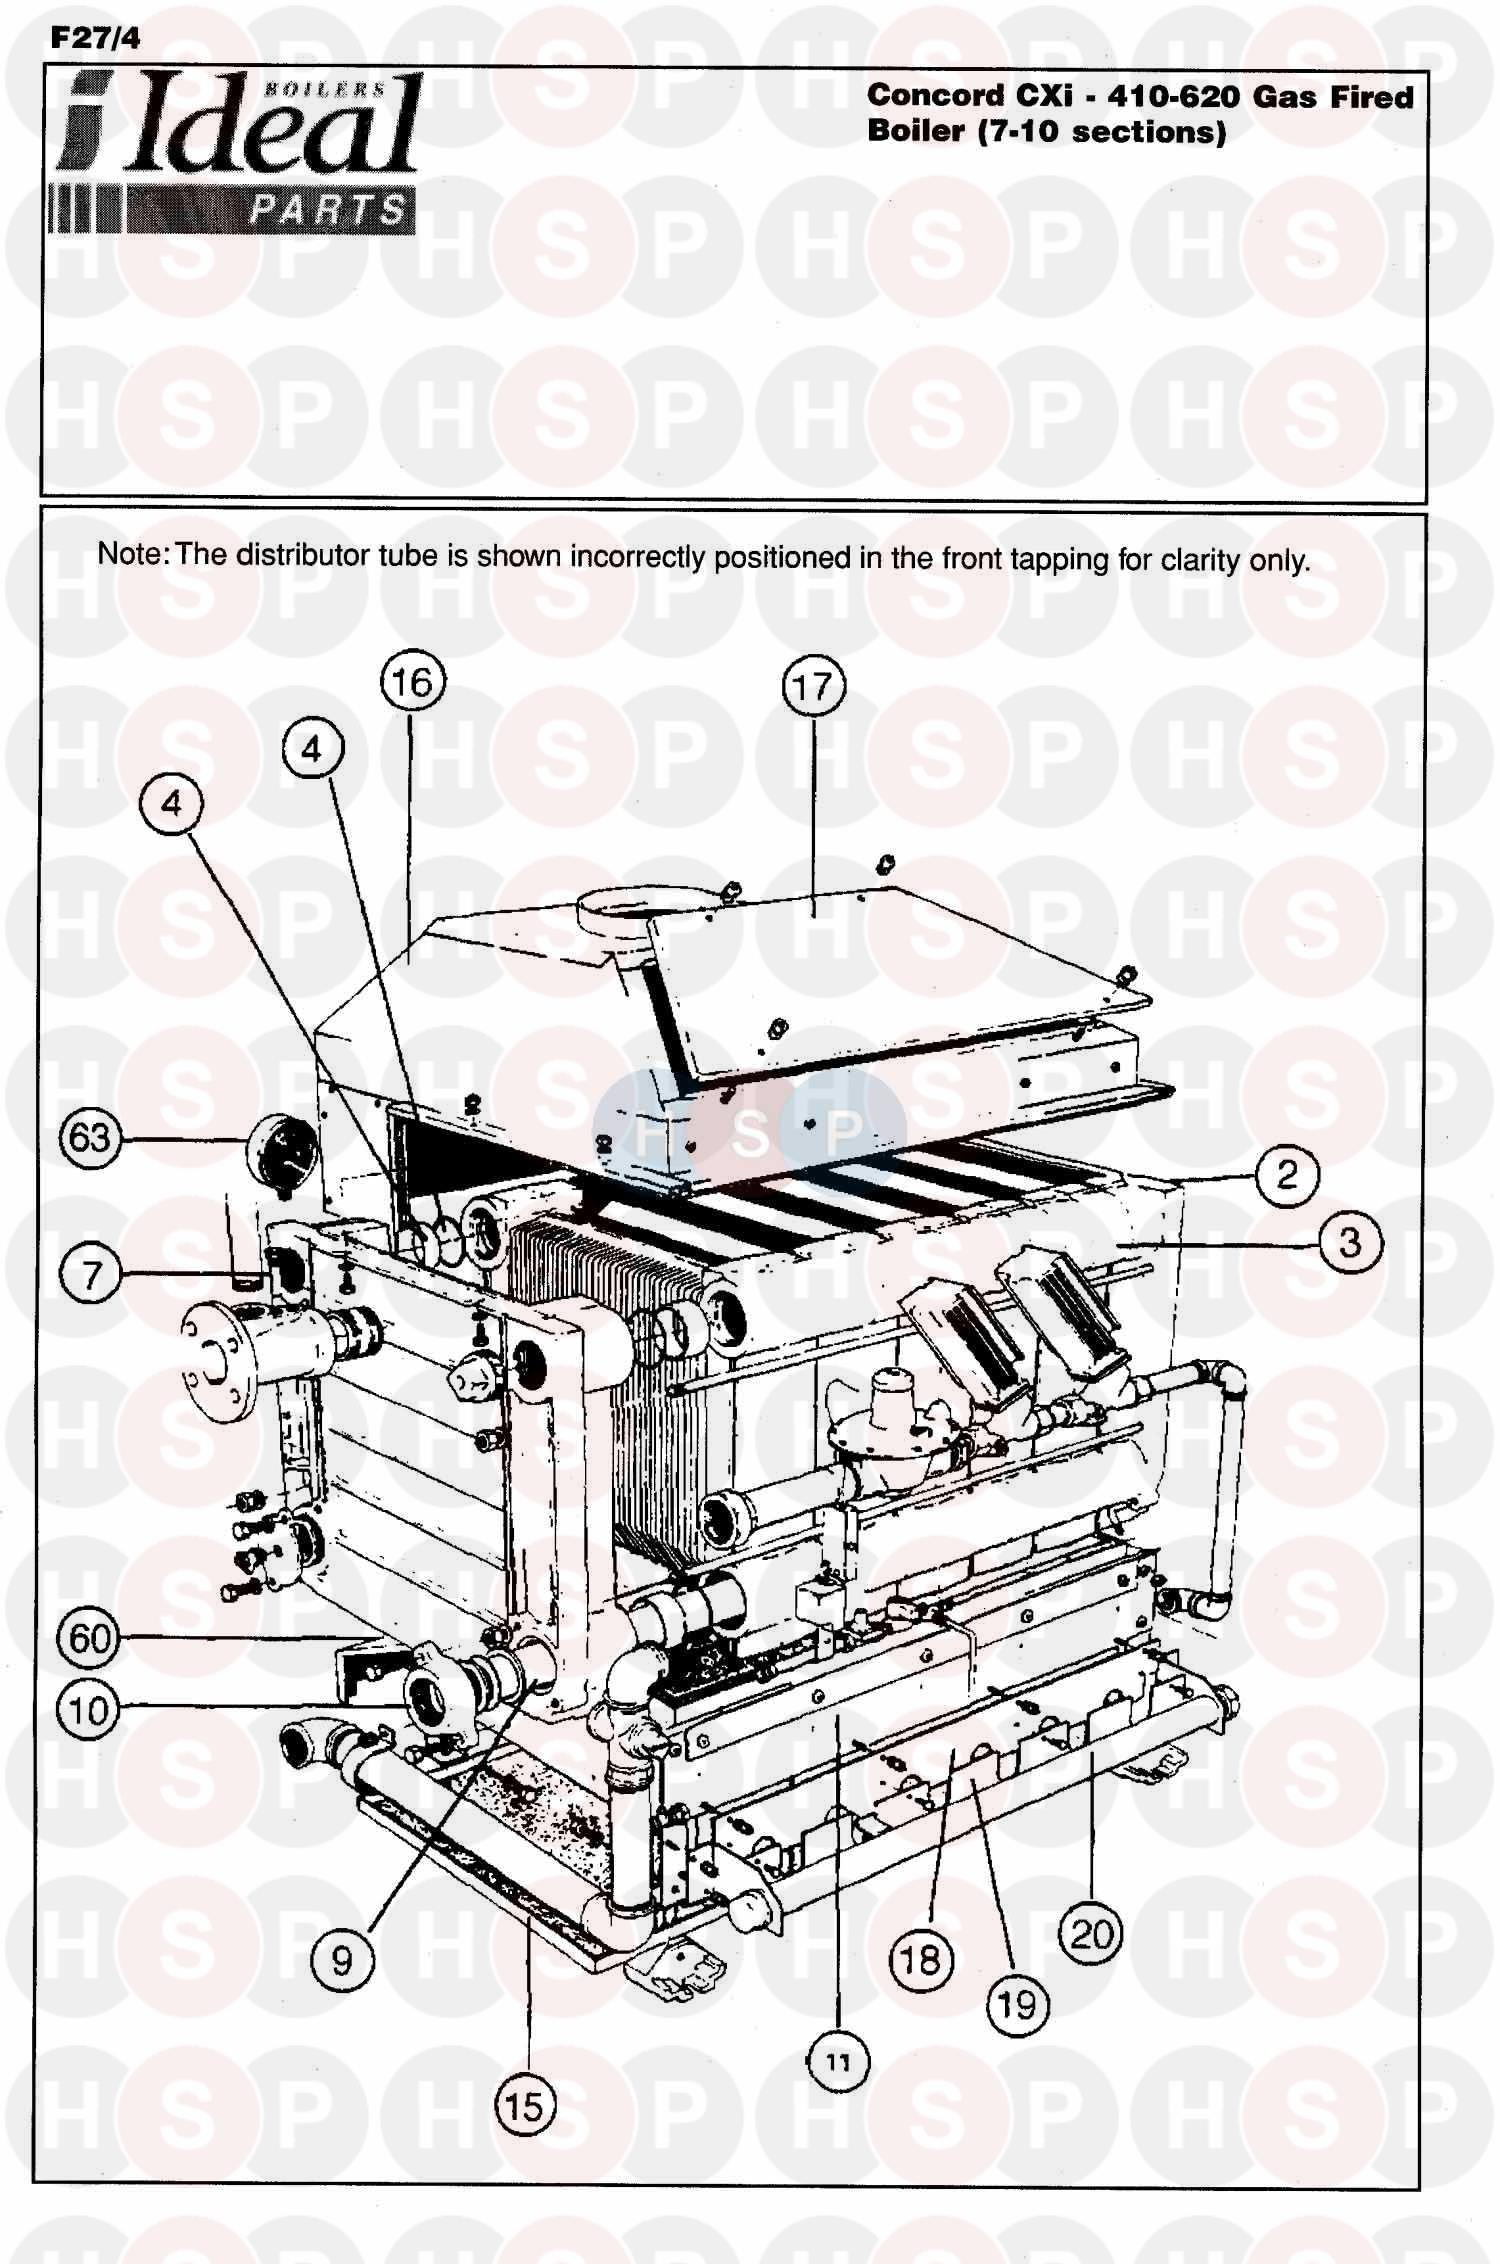 ideal concord cxi 410 appliance diagram  boiler assembly 1